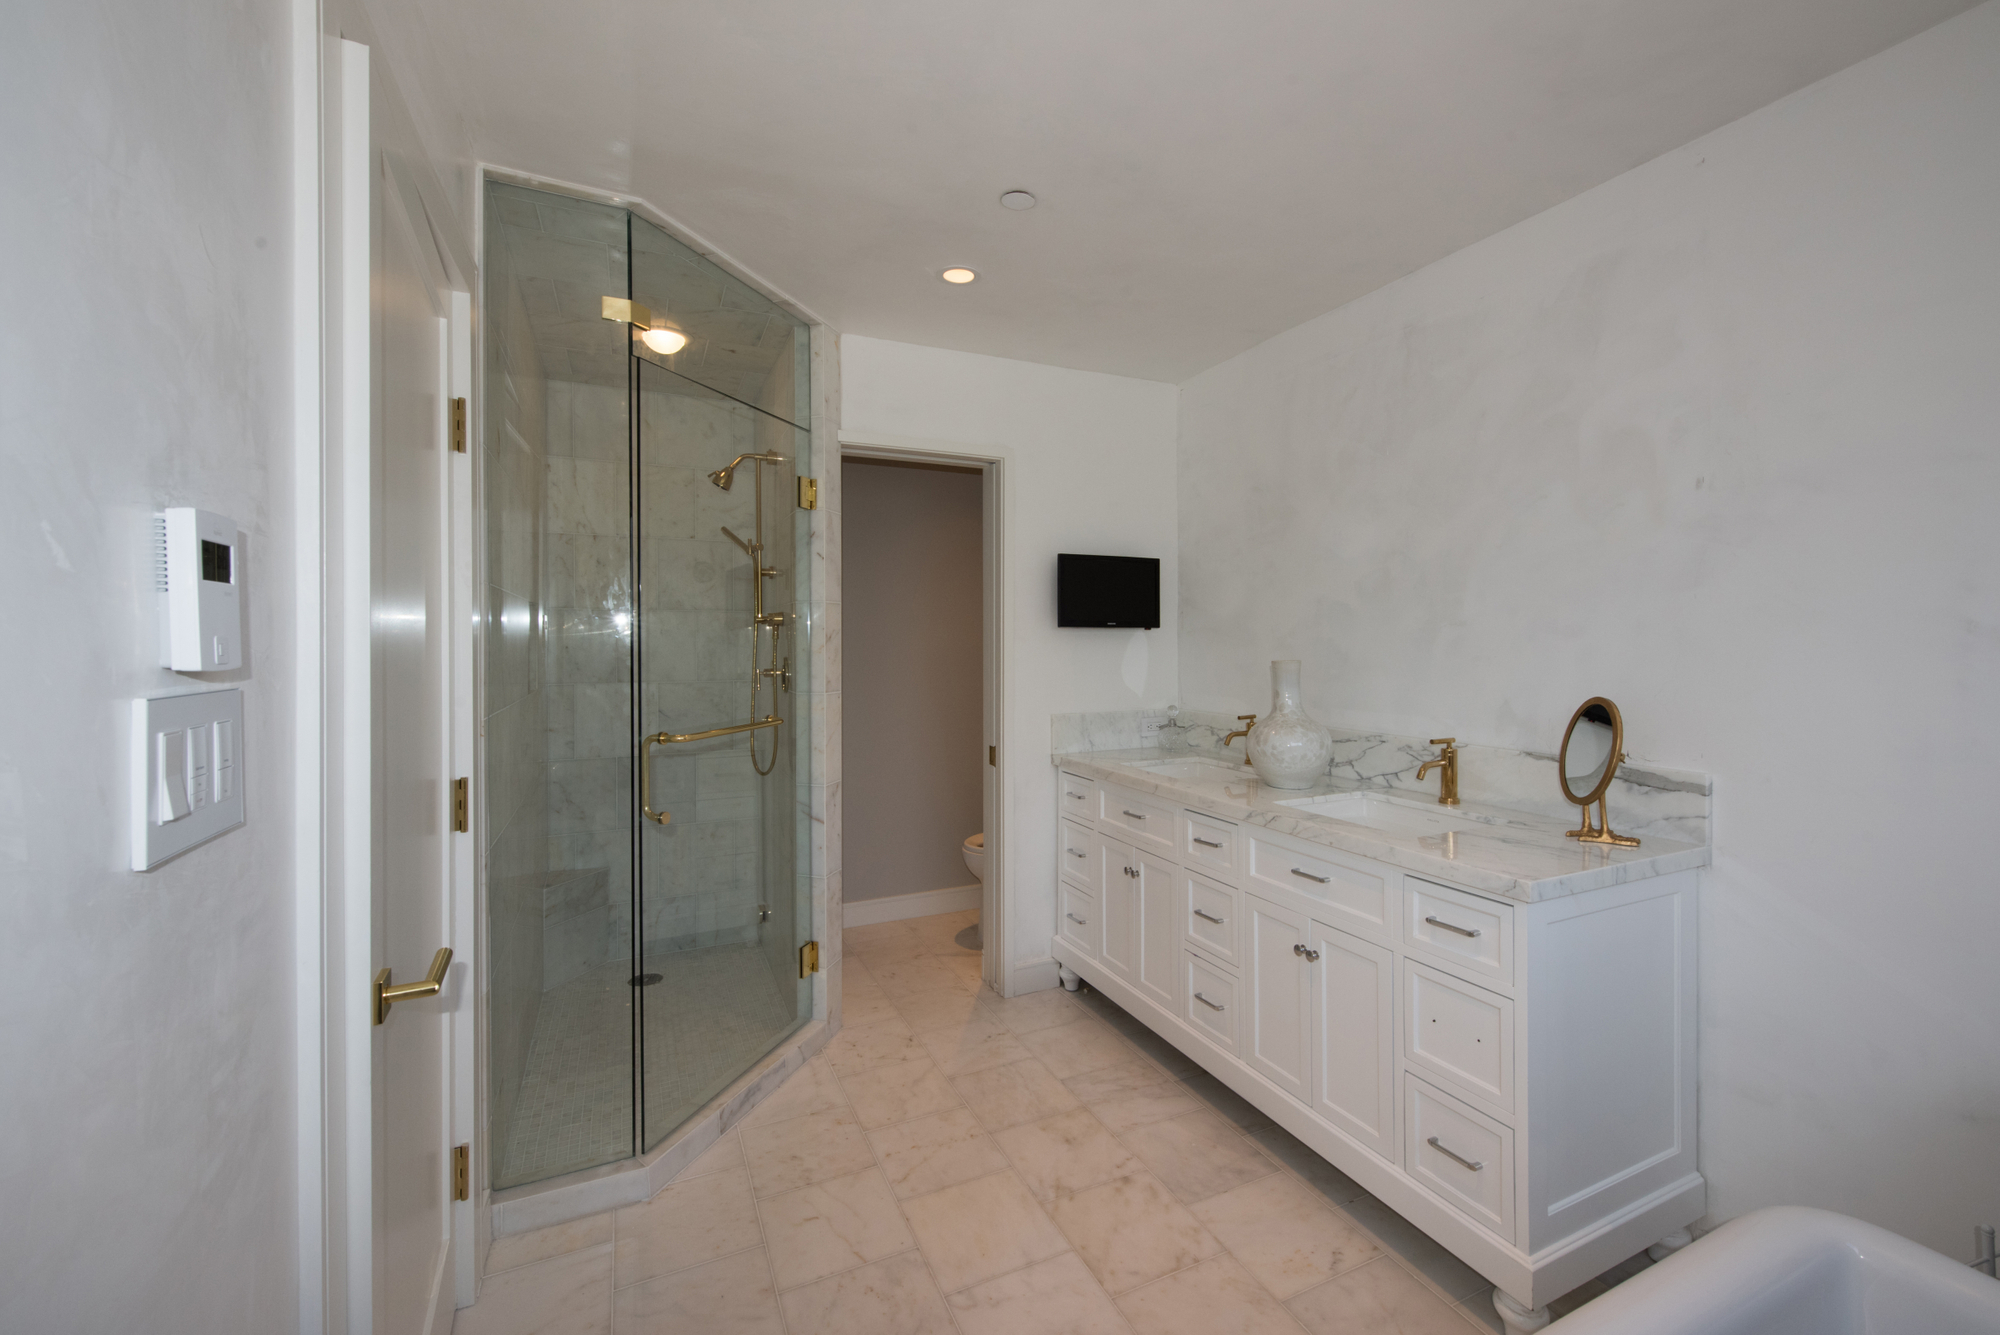 104 Cooper Master Bath from tub.jpg